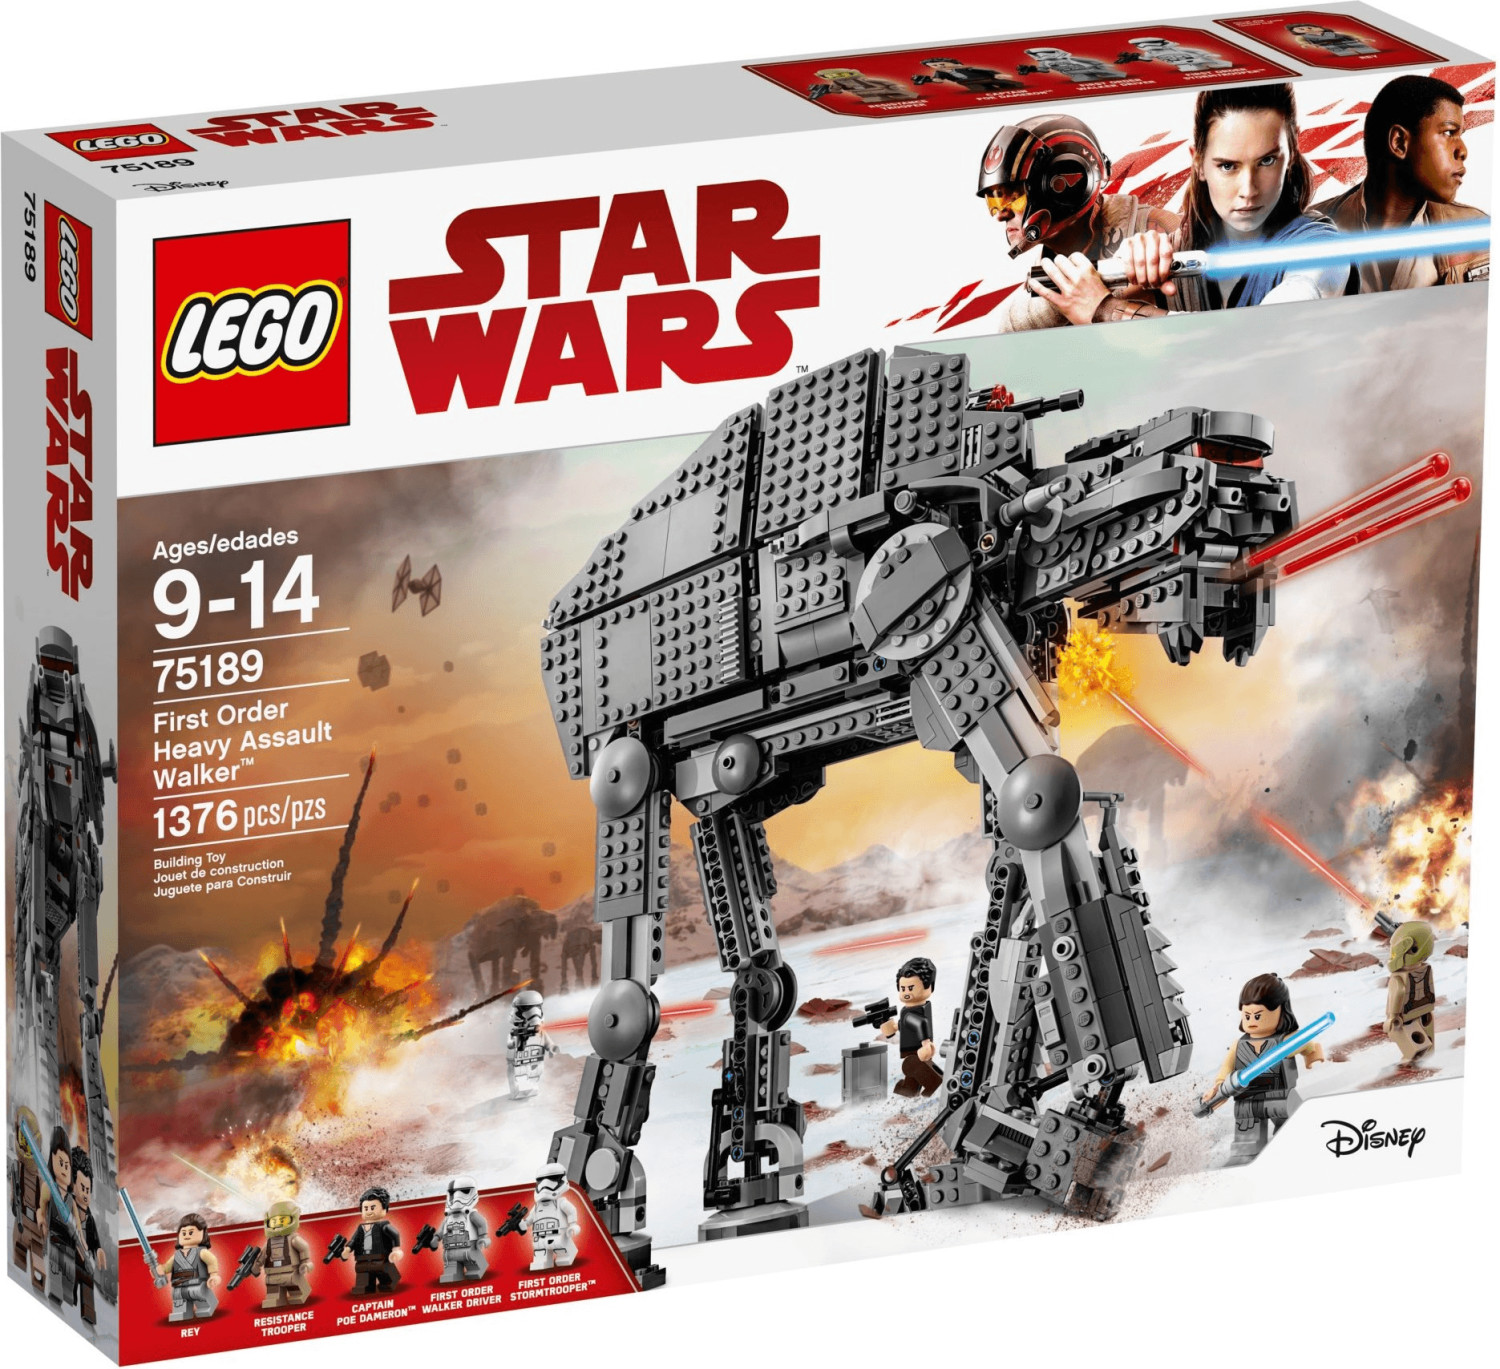 LEGO Star Wars - First Order Heavy Assault Walker (75189)